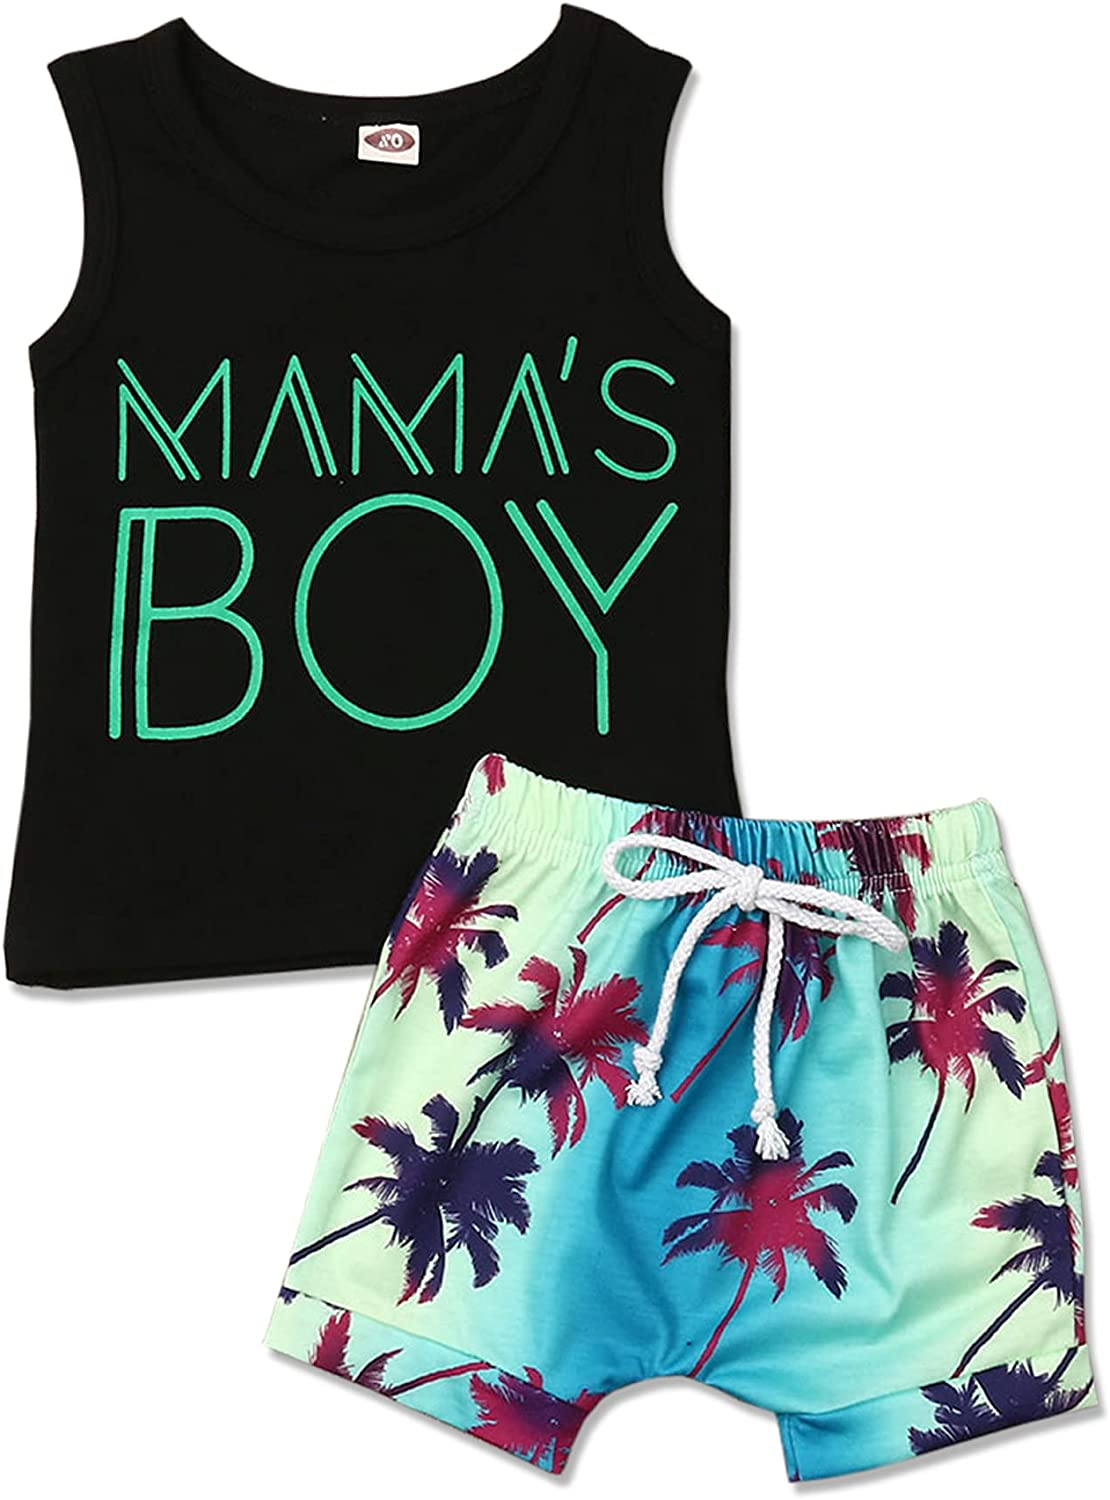 Easisim Newborn Baby Boy Outfit Cotton T-Shirt Tank Top + Jogger Shorts Set for Toddler Boys Summer Clothes